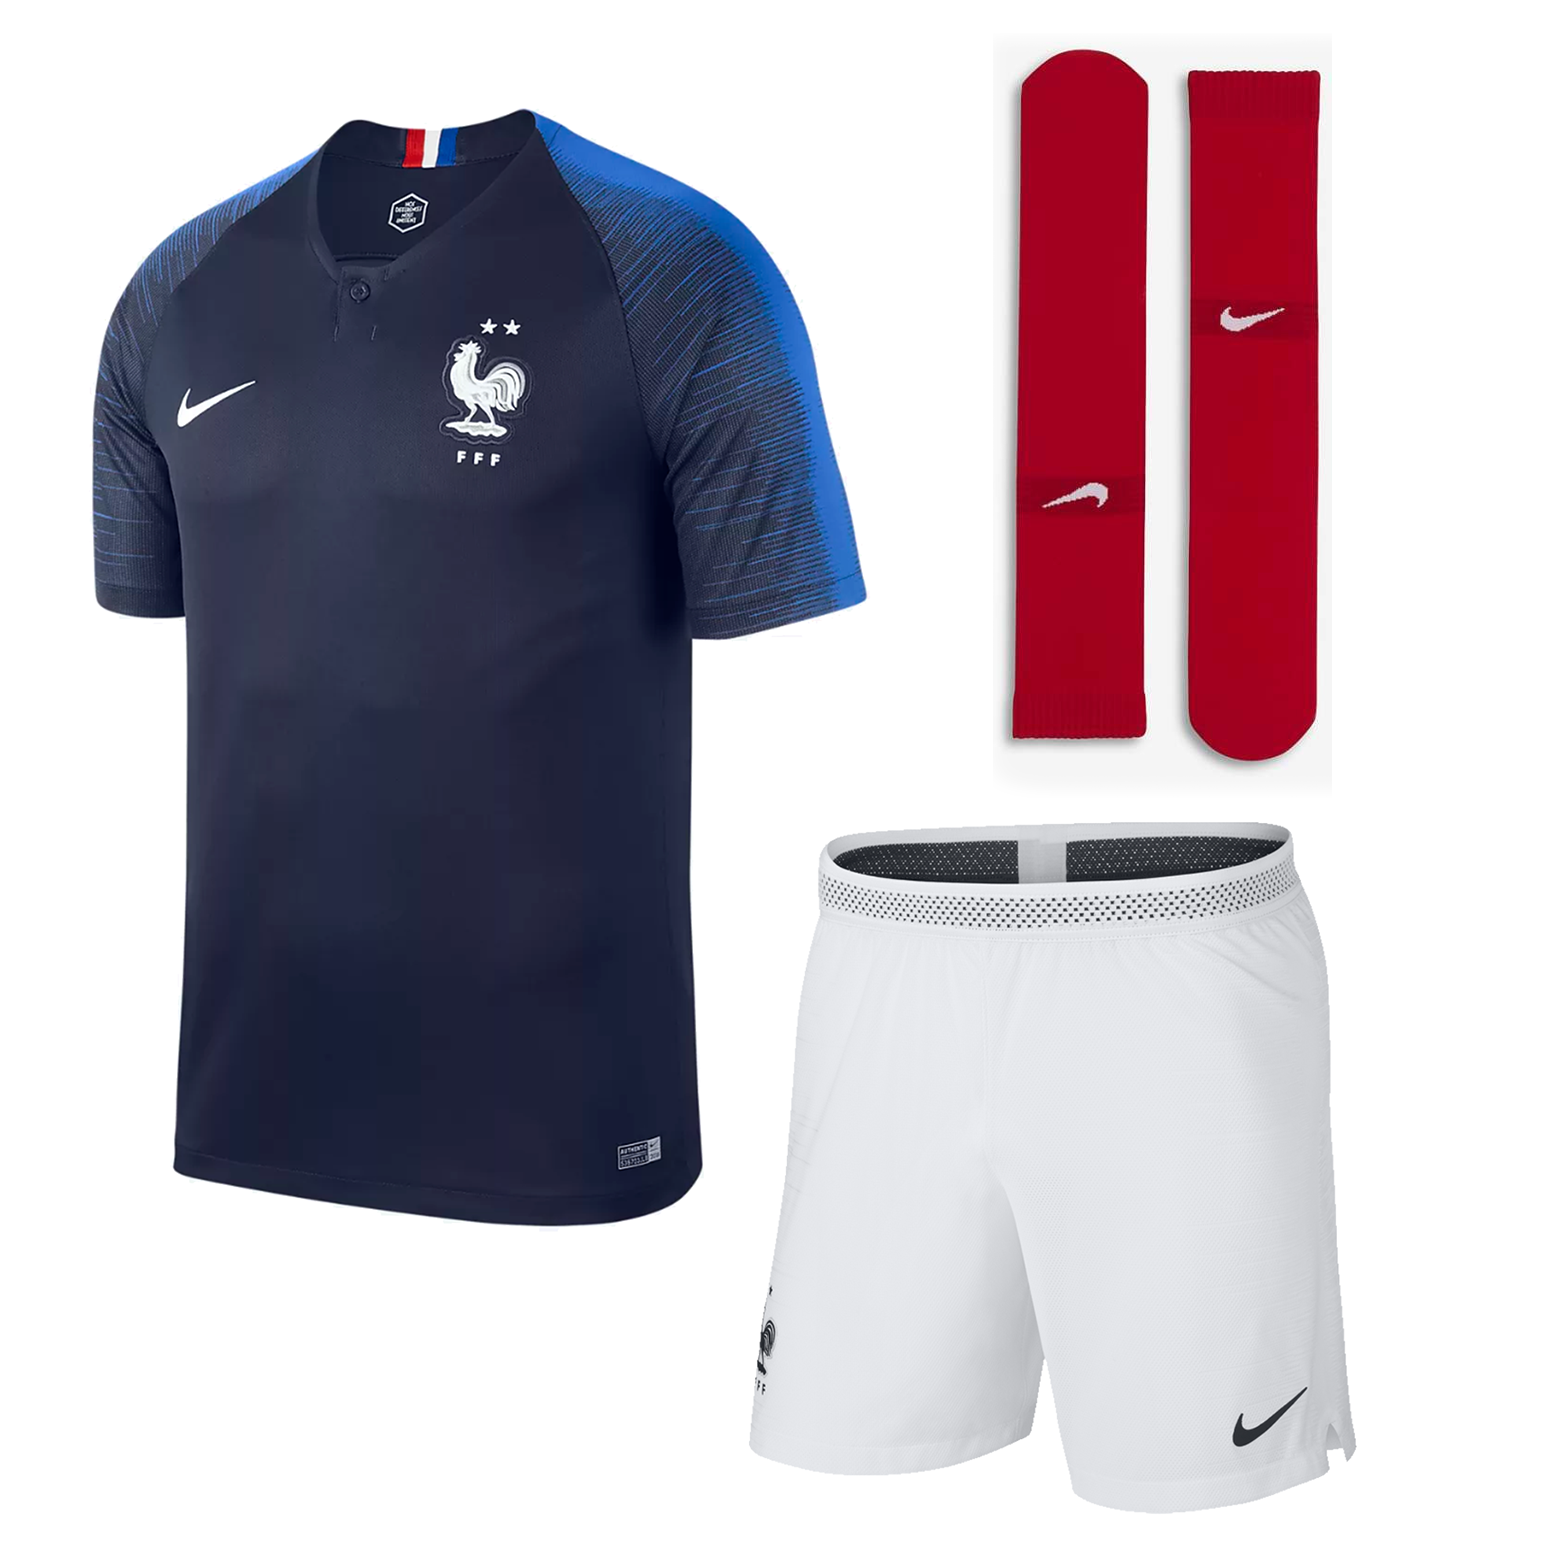 TENUE DE FOOTBALL FFF 2 ÉTOILES 2018/19 HOMME FRANCE FOOTBALL freeshipping - Foot Online